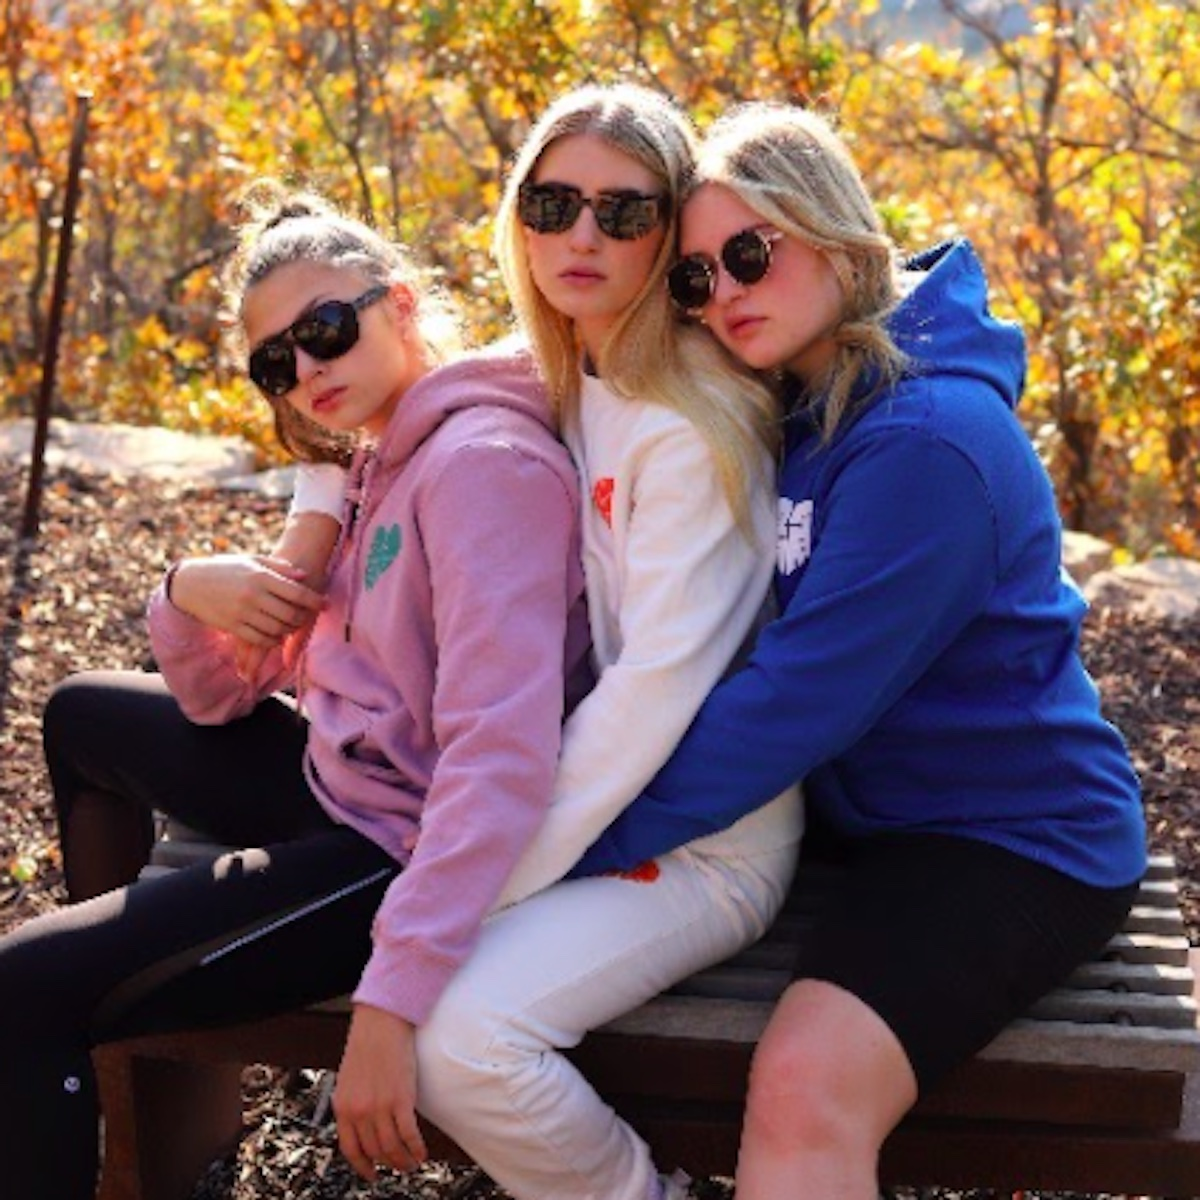 Three women wearing 1,2,3 Ciao hoodies sitting on a bench in a park amongst fall foliage